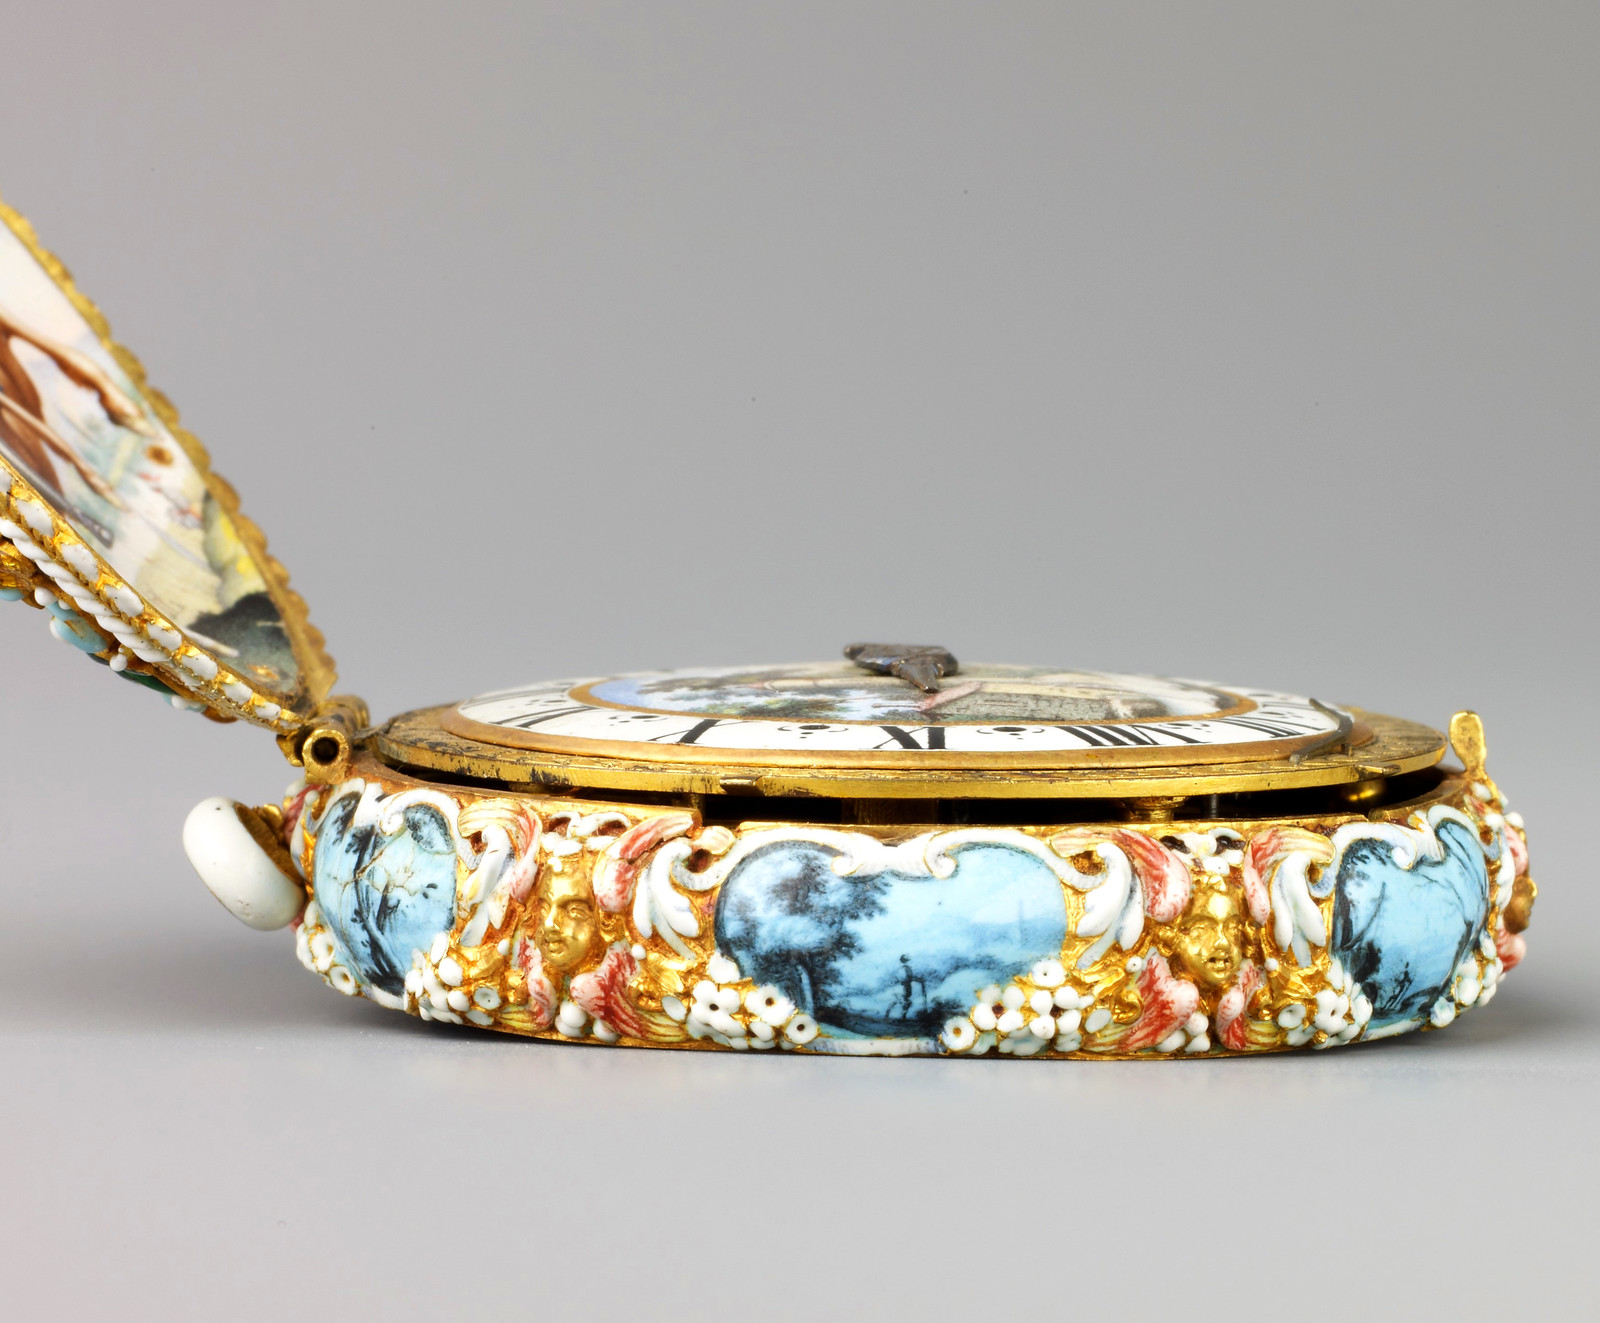 1645. Watch. Jacques Goullons. Case and dial of enameled gold; hand of steel; movement of brass, partly gilded, and steel. metmuseum2